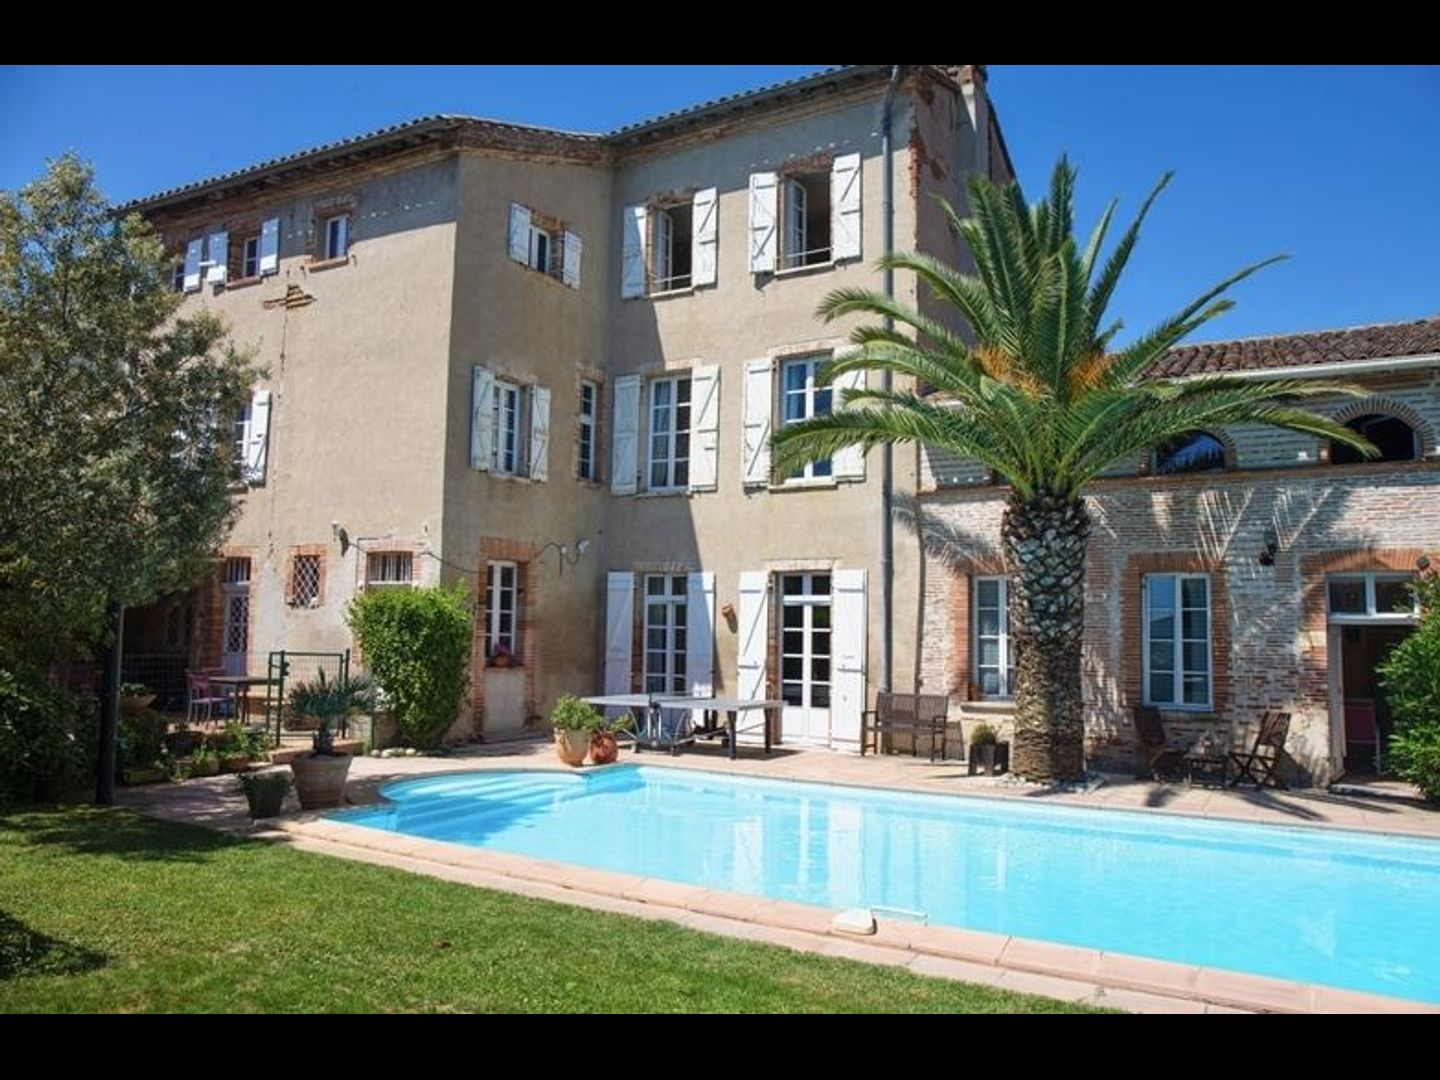 A house with a pool in front of a building at Maison Joséphine - chambres d'hôtes.